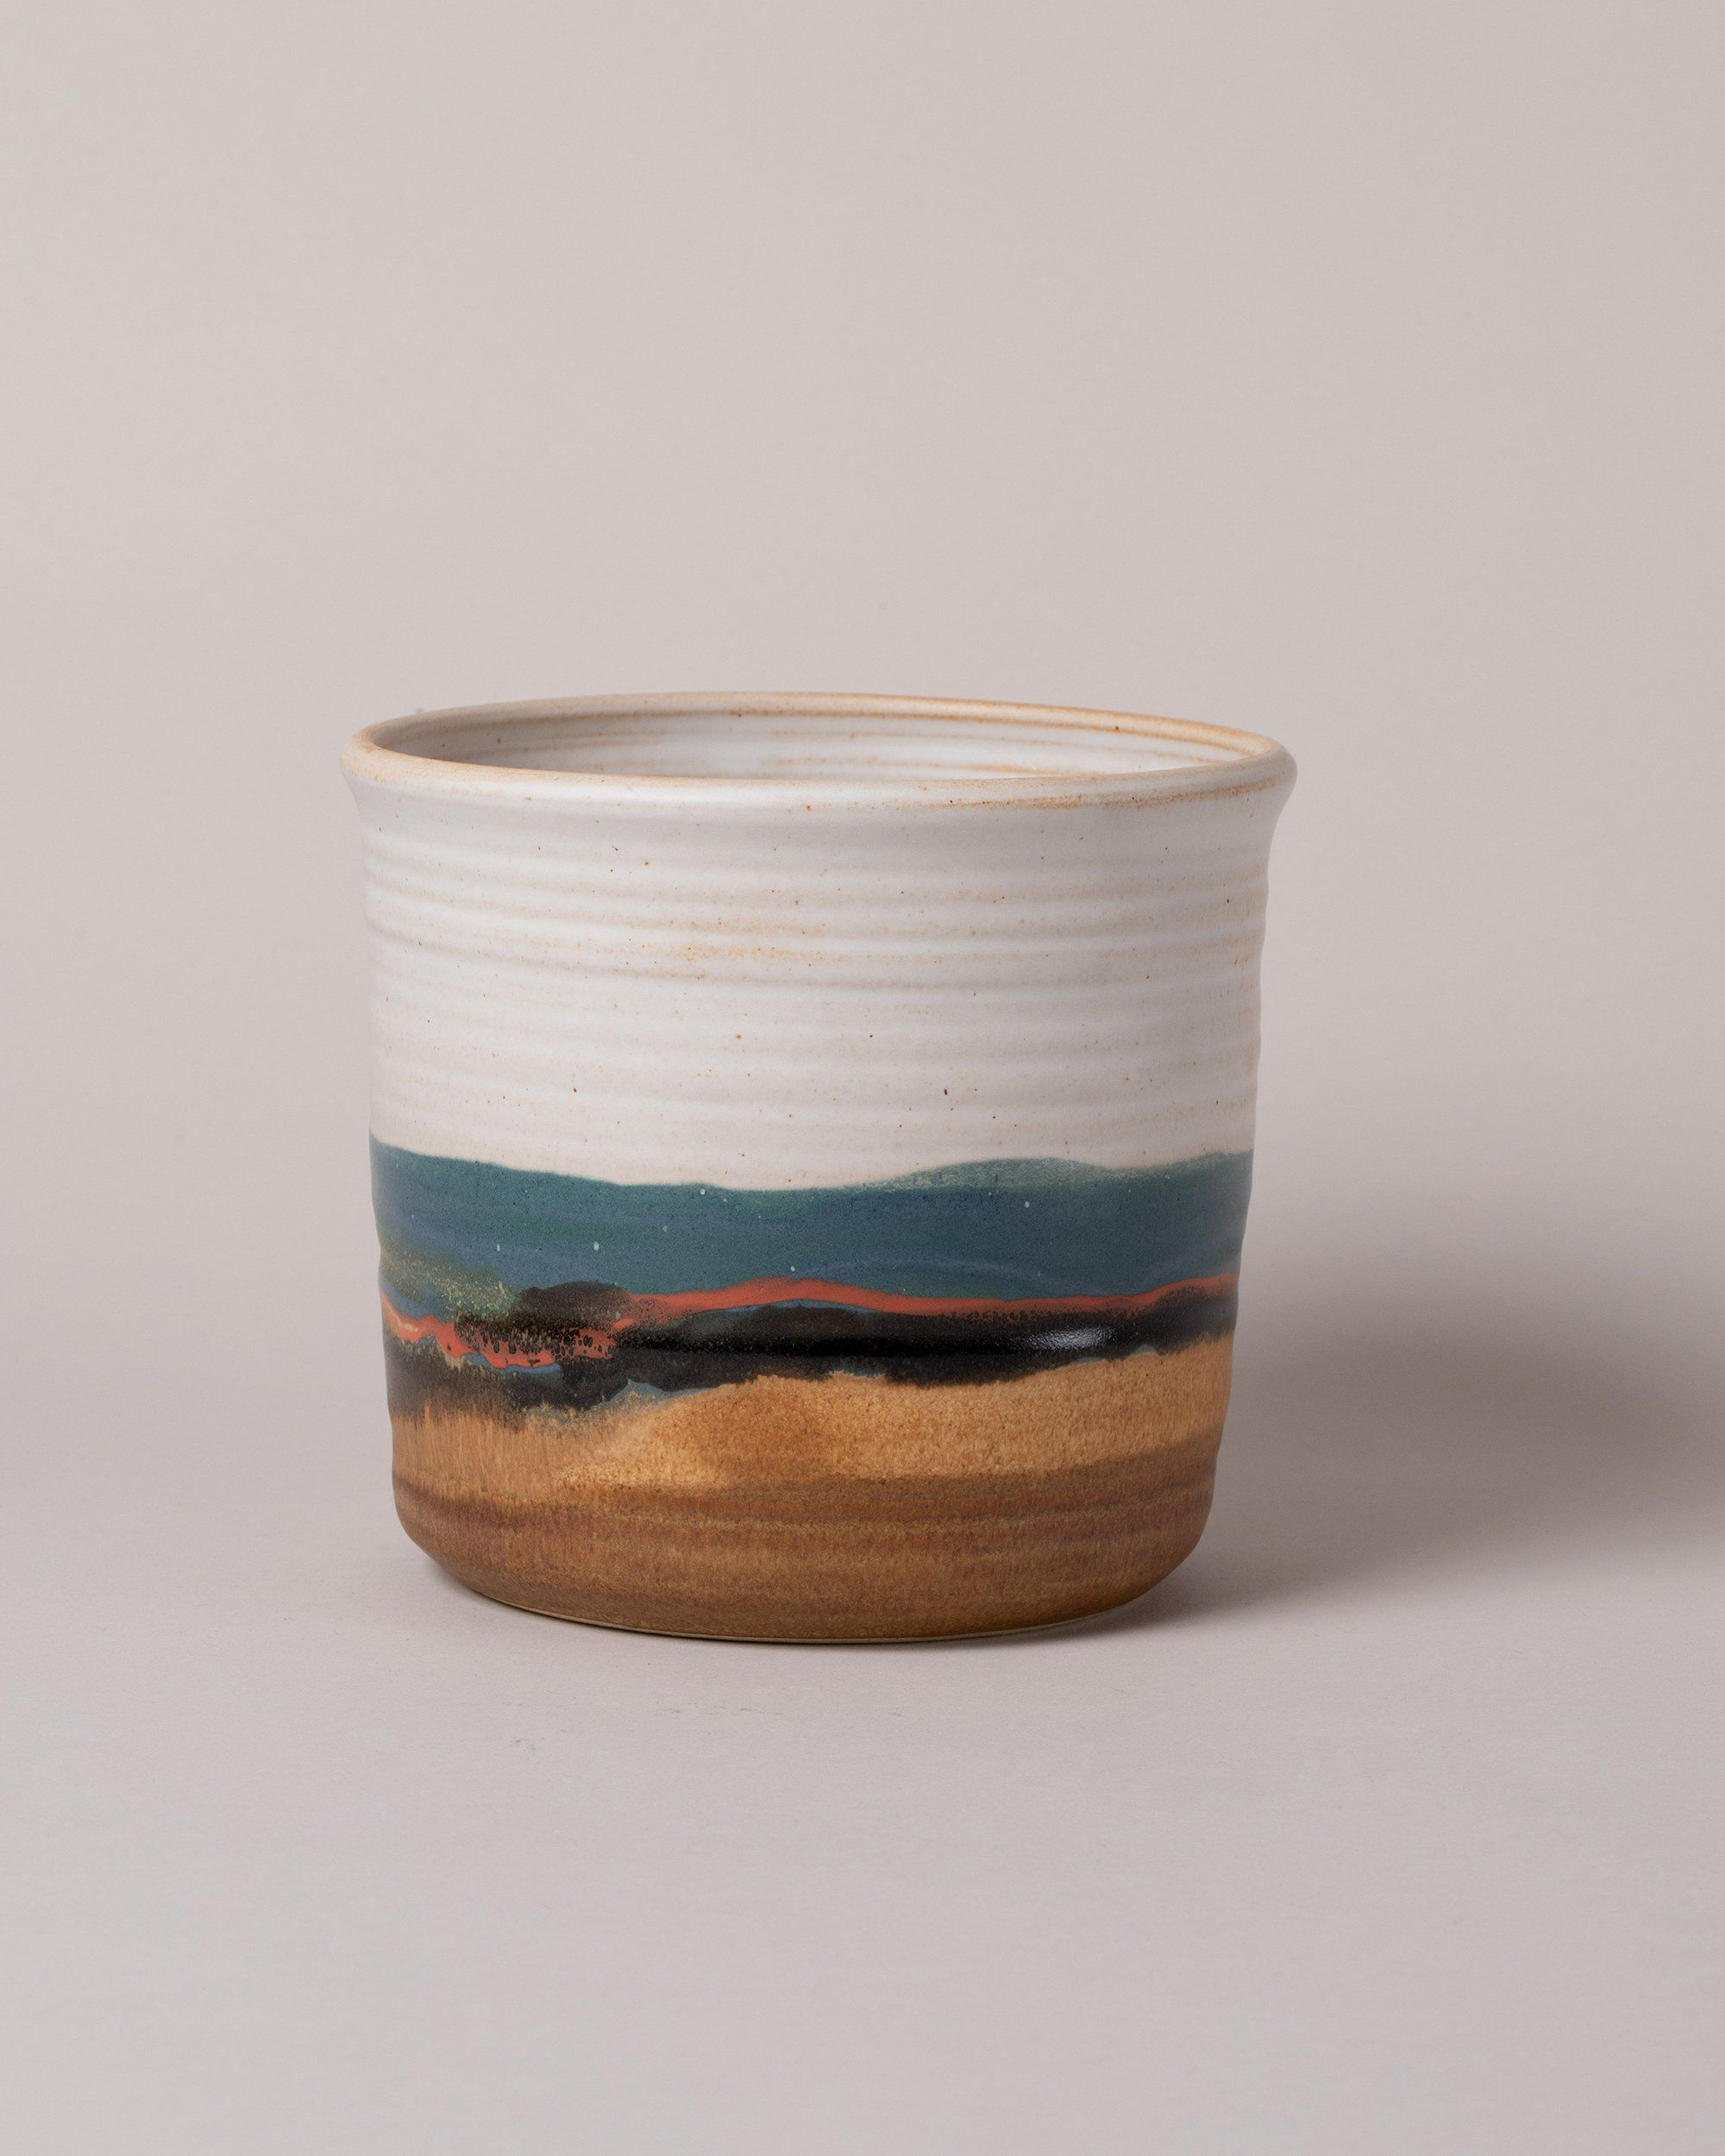 Glazed, stoneware vessel in southwestern inspired colors Handmade in Illinois, each piece of Robert Blue's Blue Eagle pottery is unique